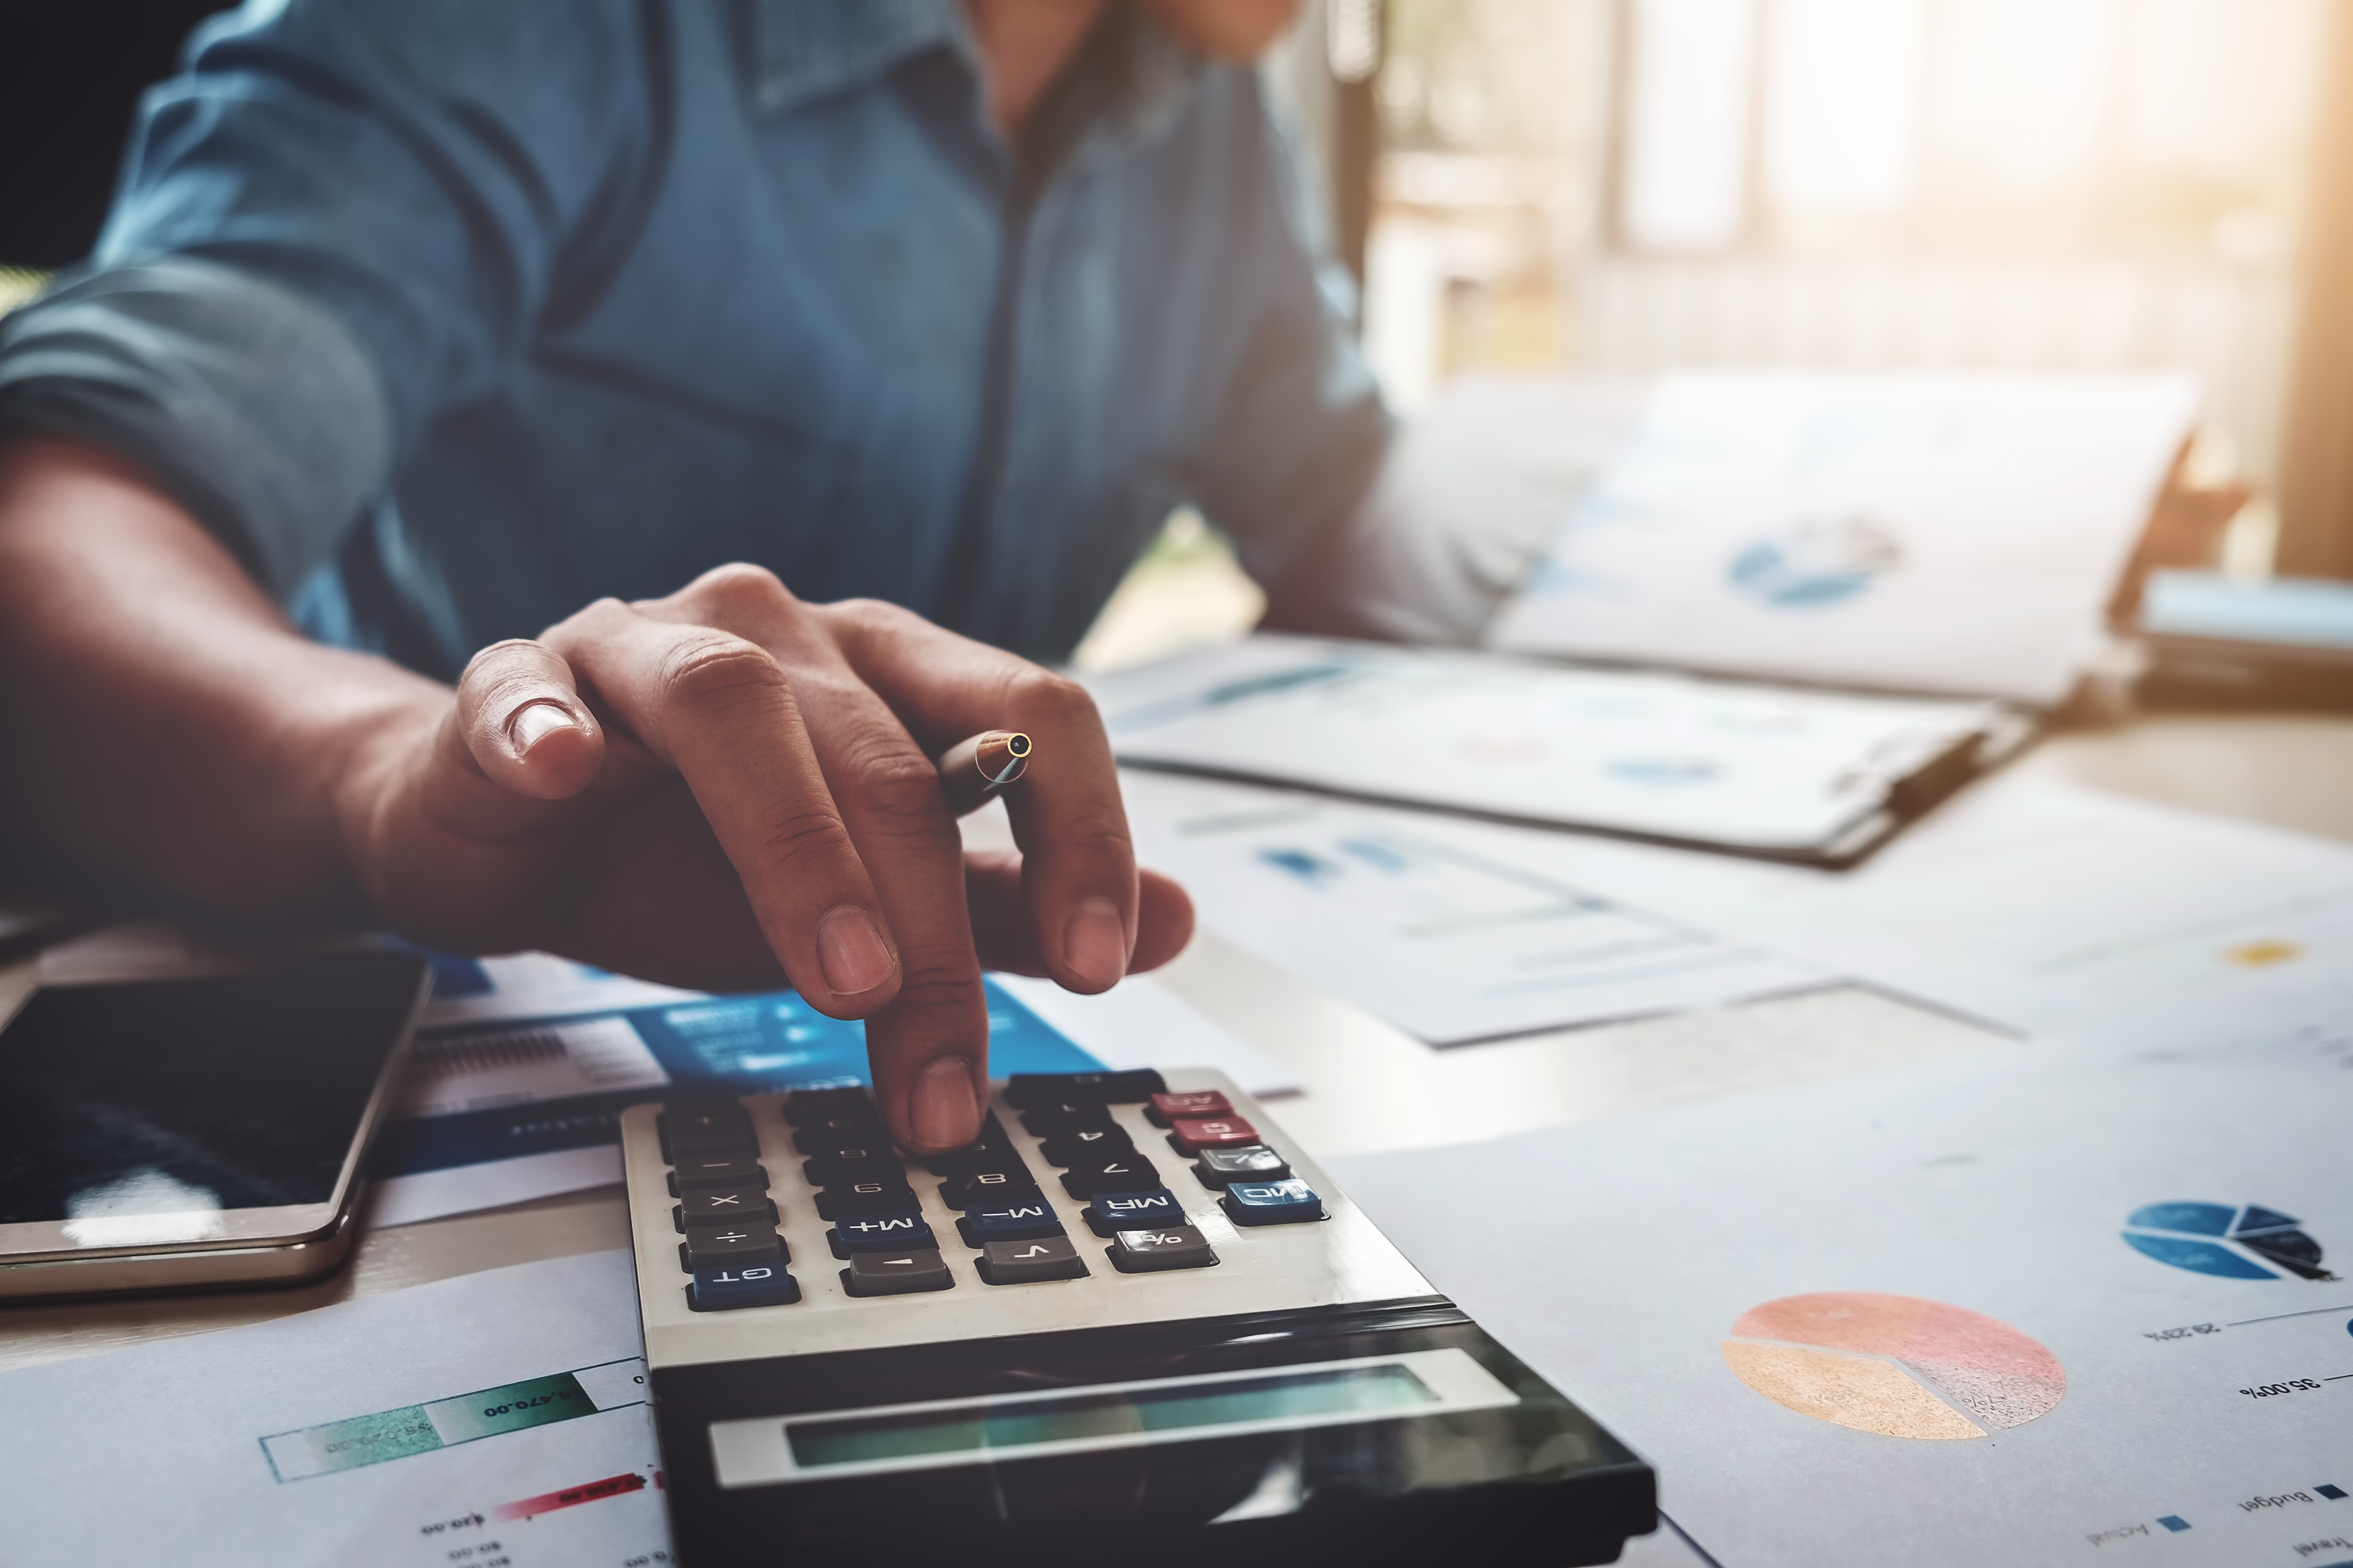 7 steps for recession-proofing your business